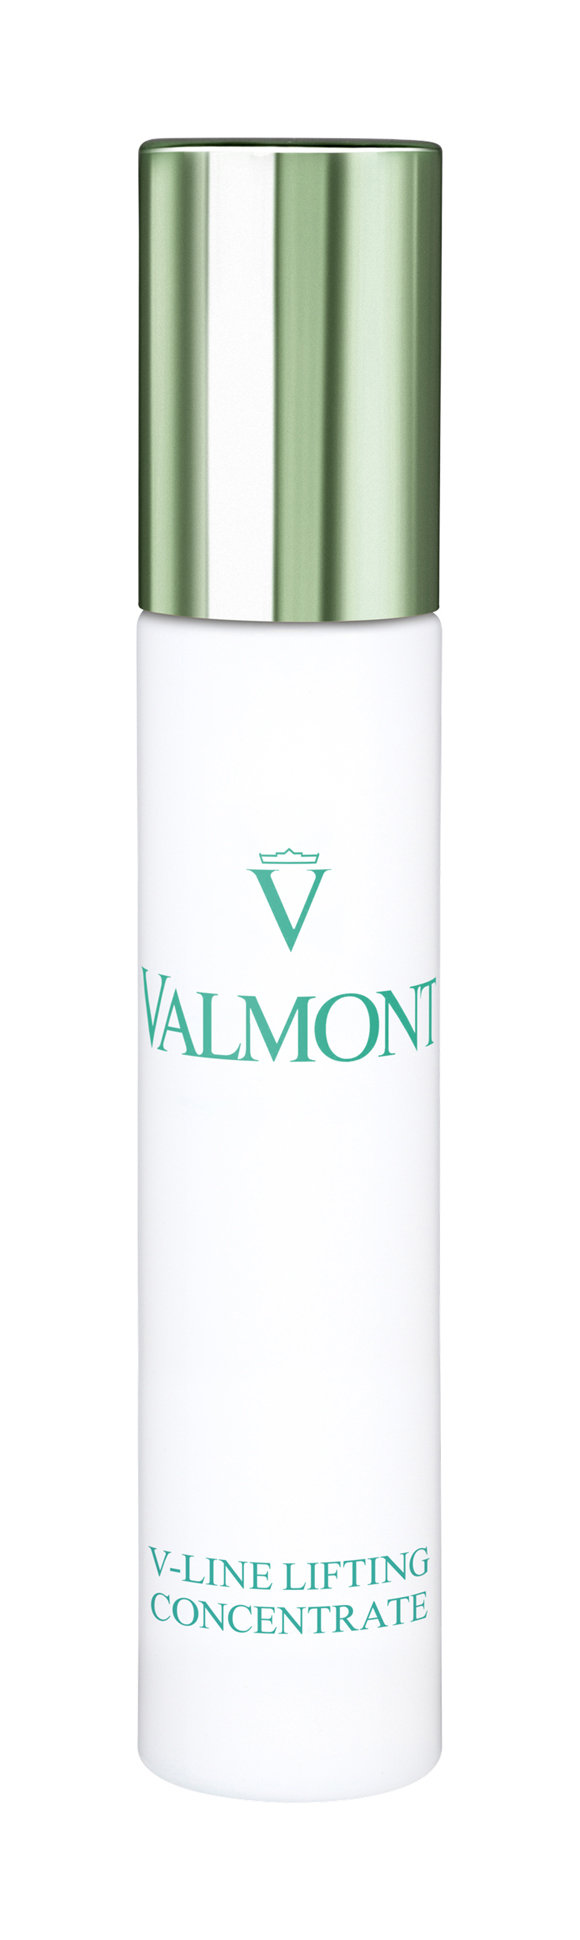 Valmont V-LINE Lifting Concentrate V LINE Cыворотка-лифтинг для лица 30 мл